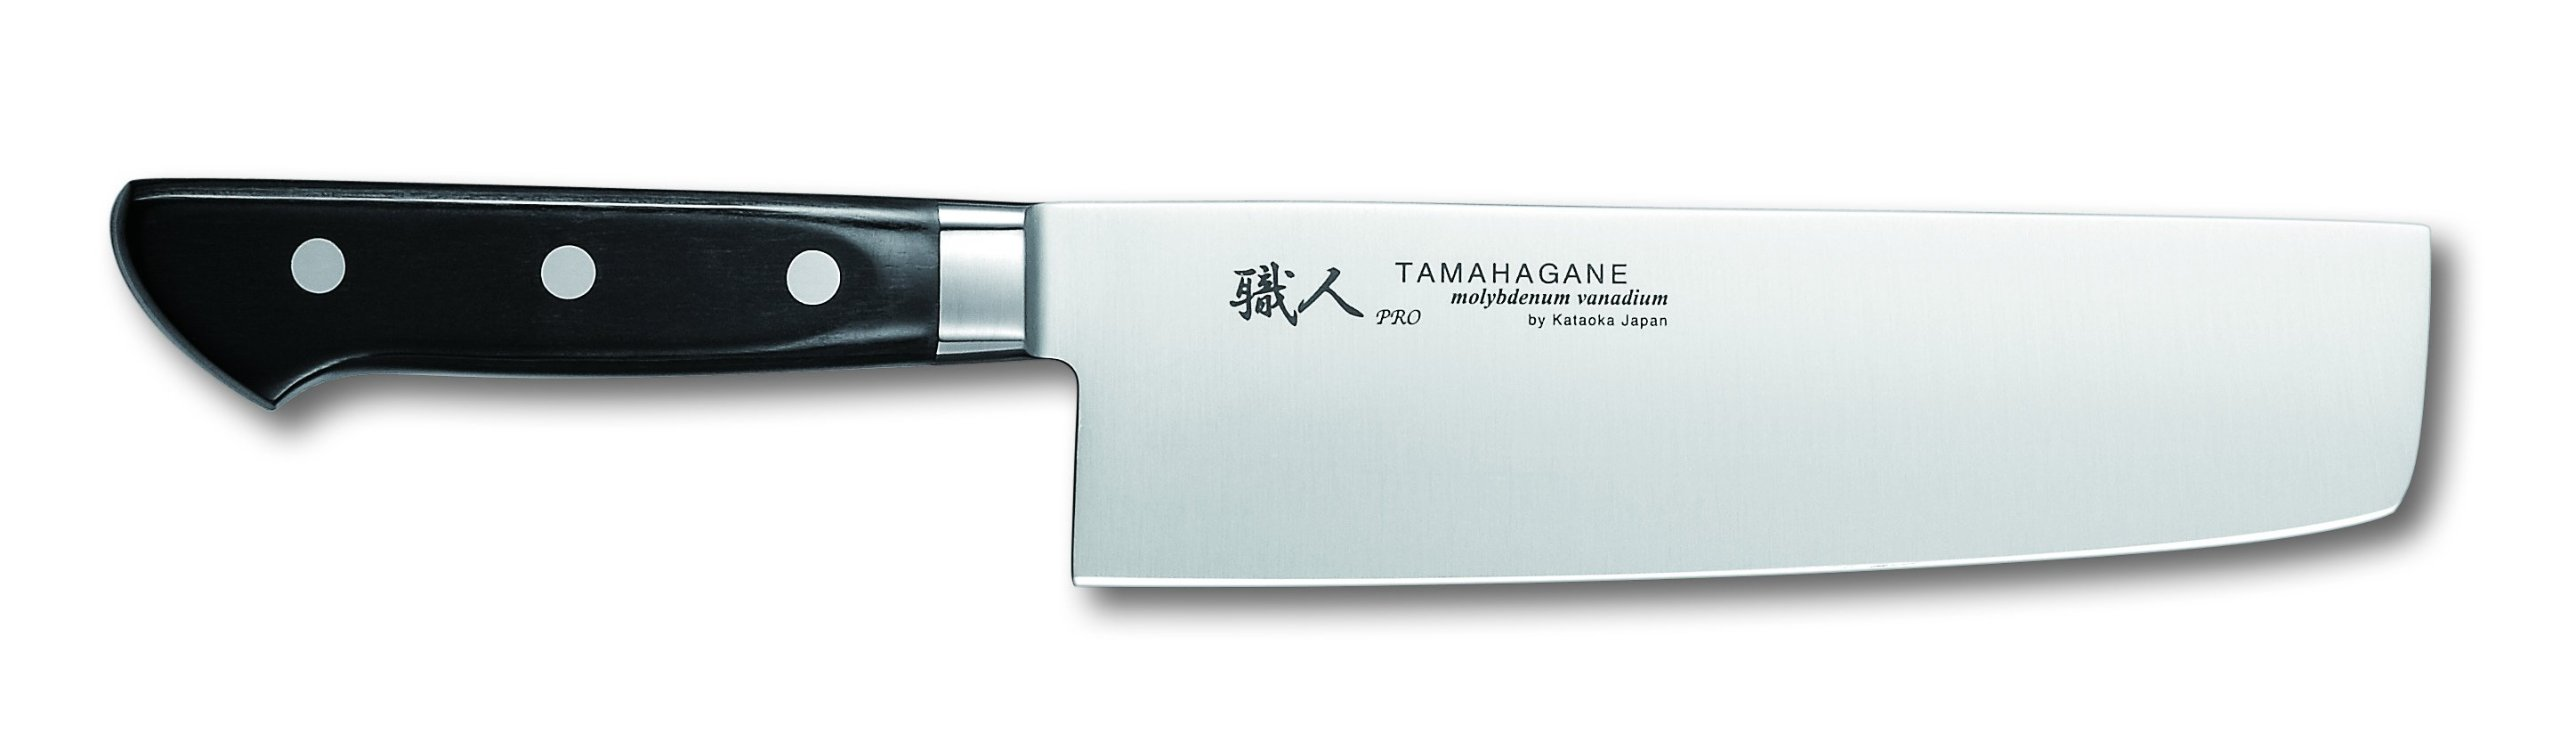 Tamahagane Pro P-1165-7 inch, 180mm Nakiri Vegetable Knife